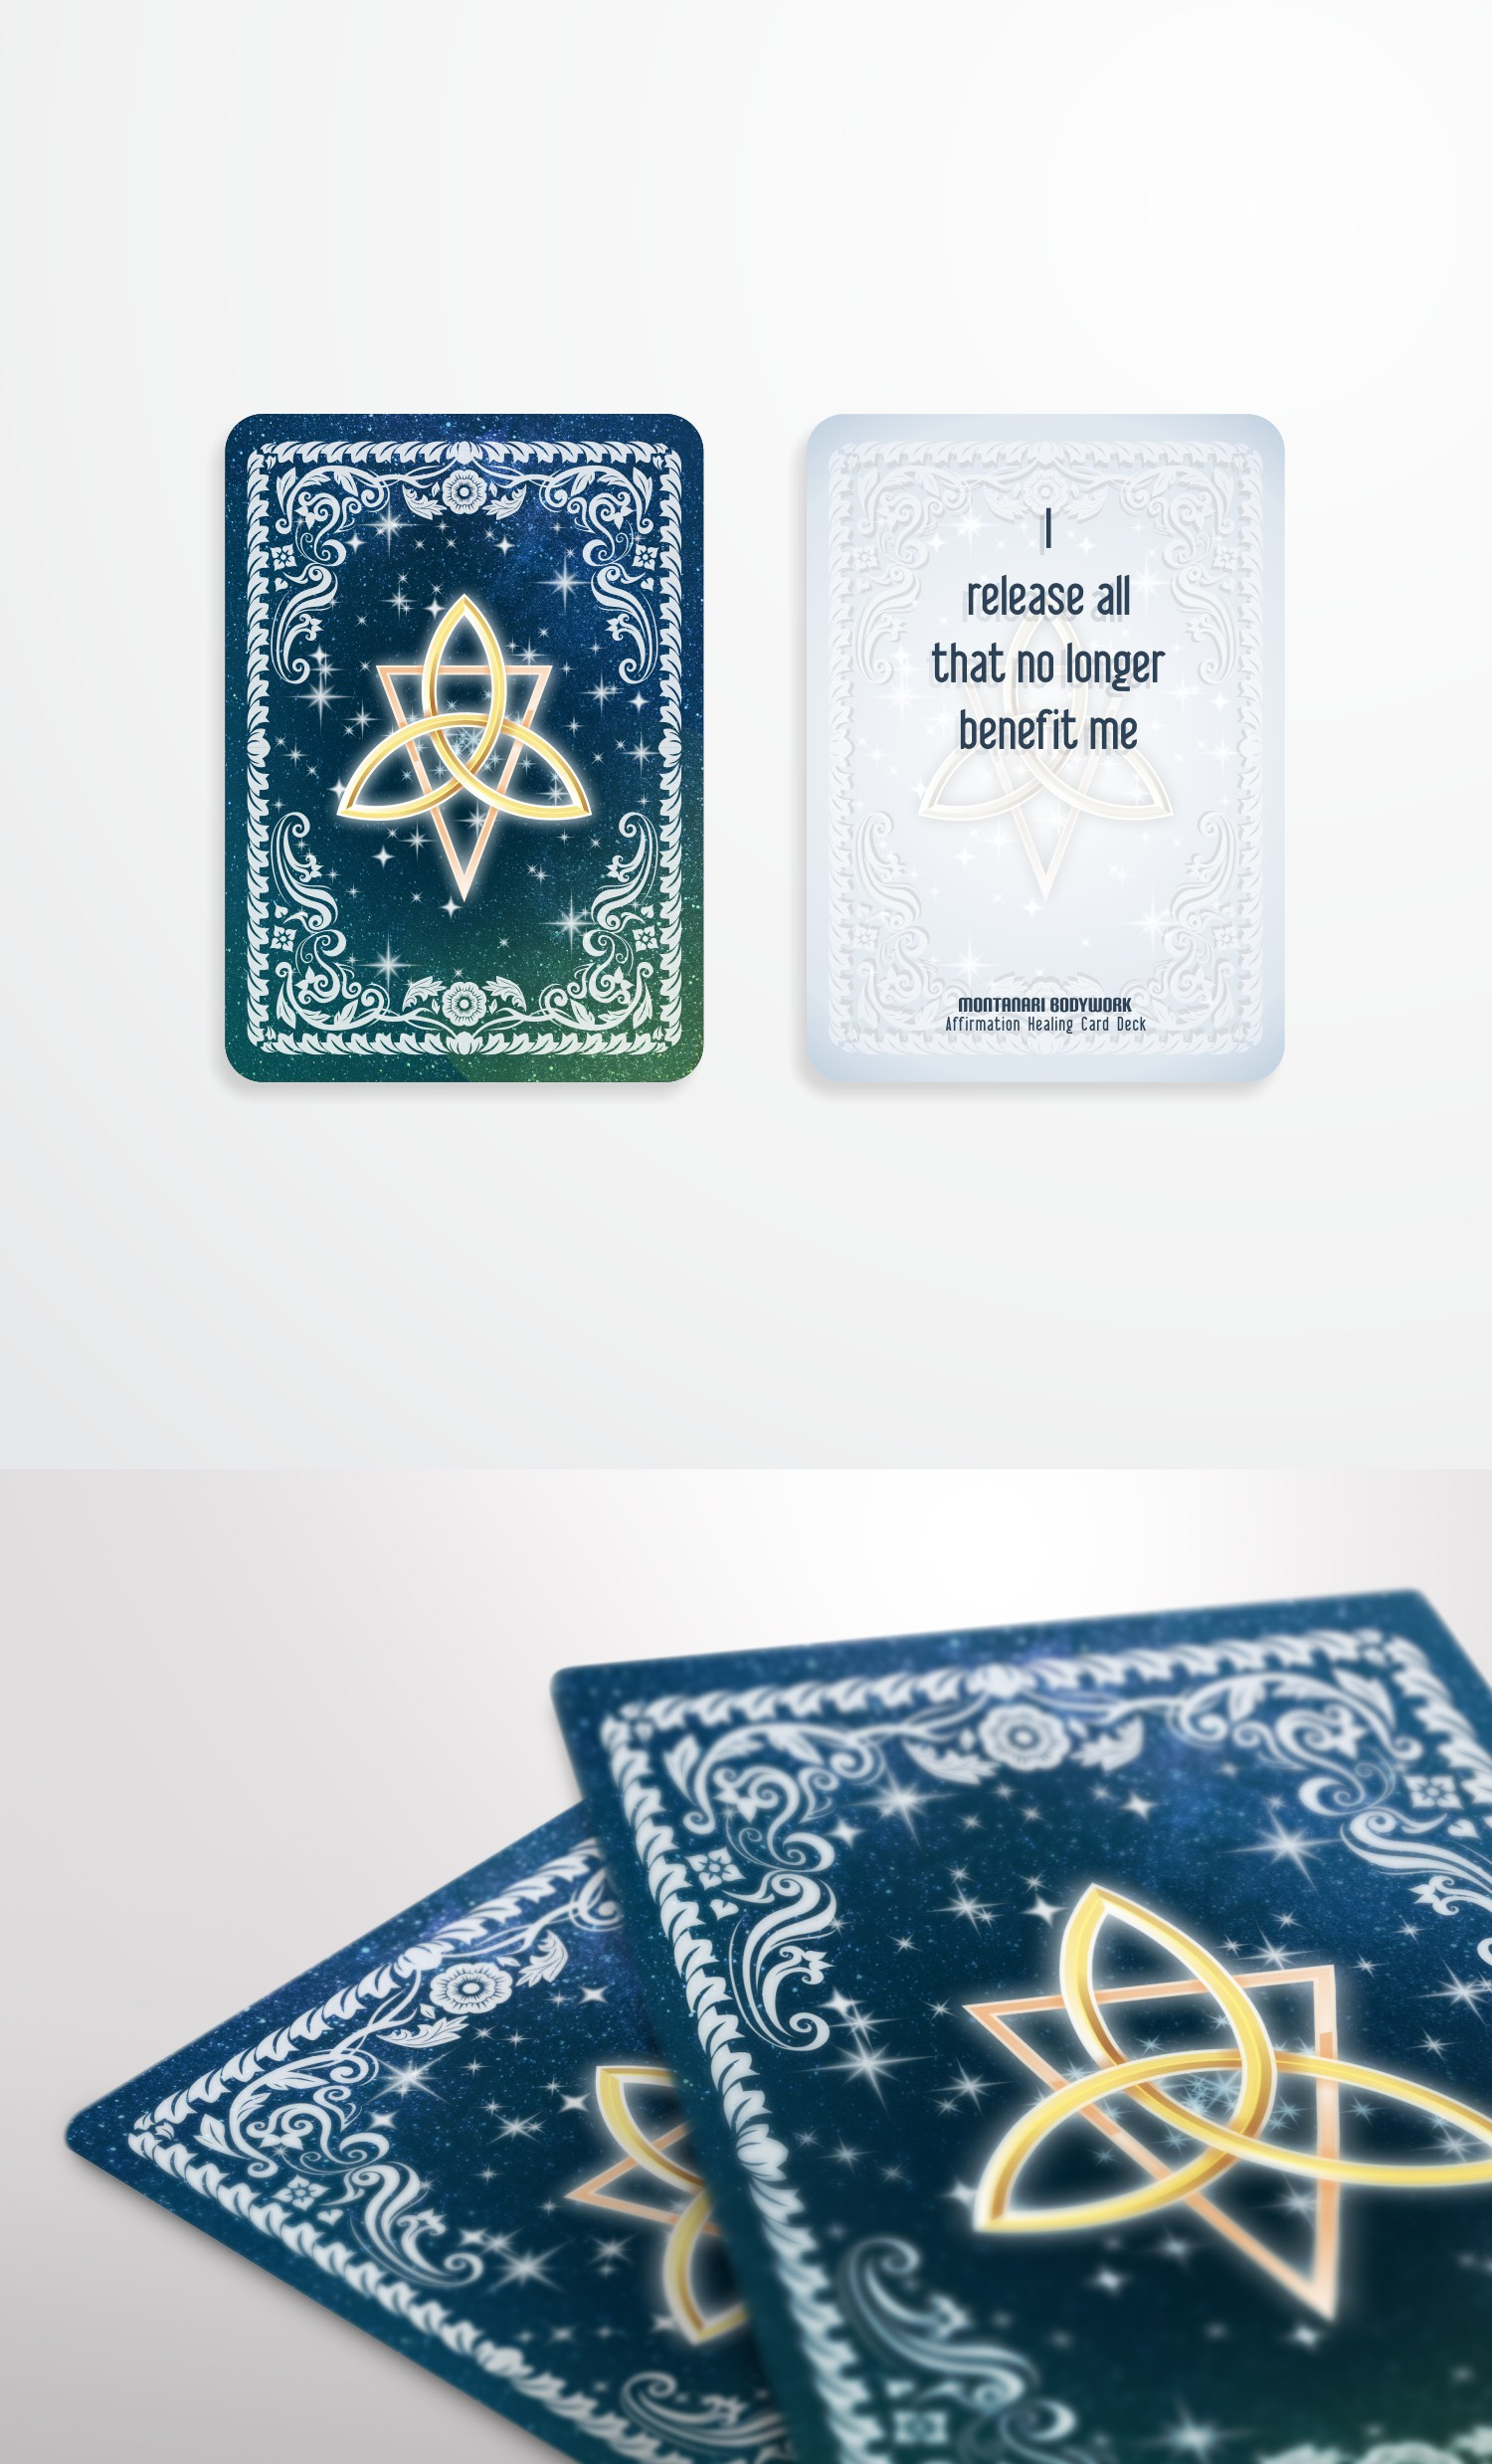 Create a meaningful, awesome, magic design for a card deck!